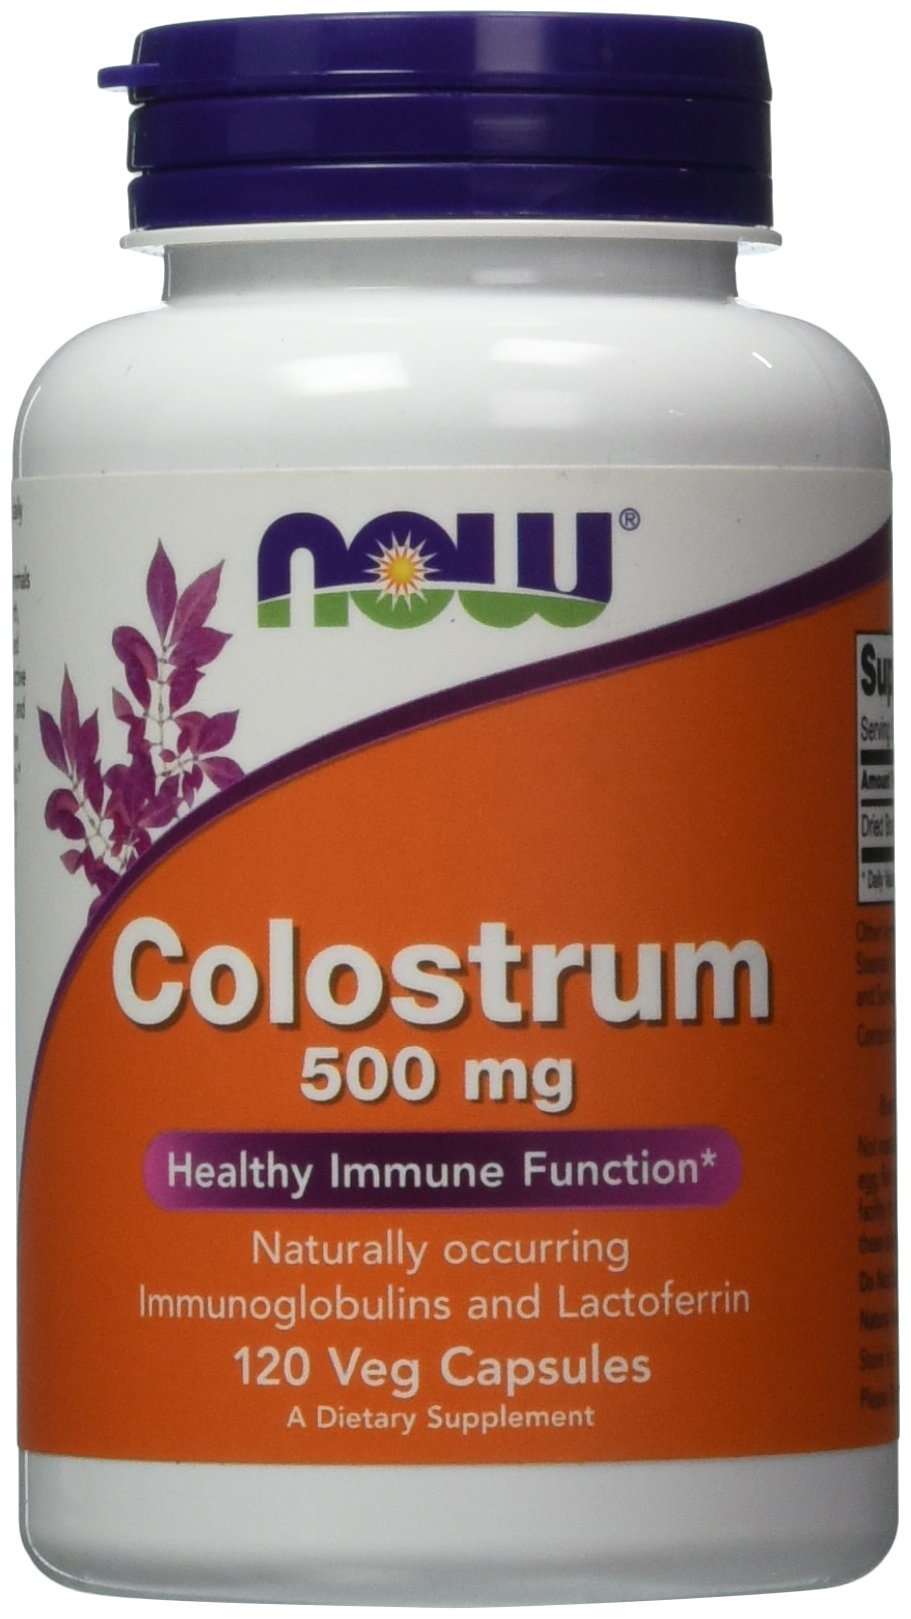 NOW Colostrum 500 mg,120 Veg Capsules